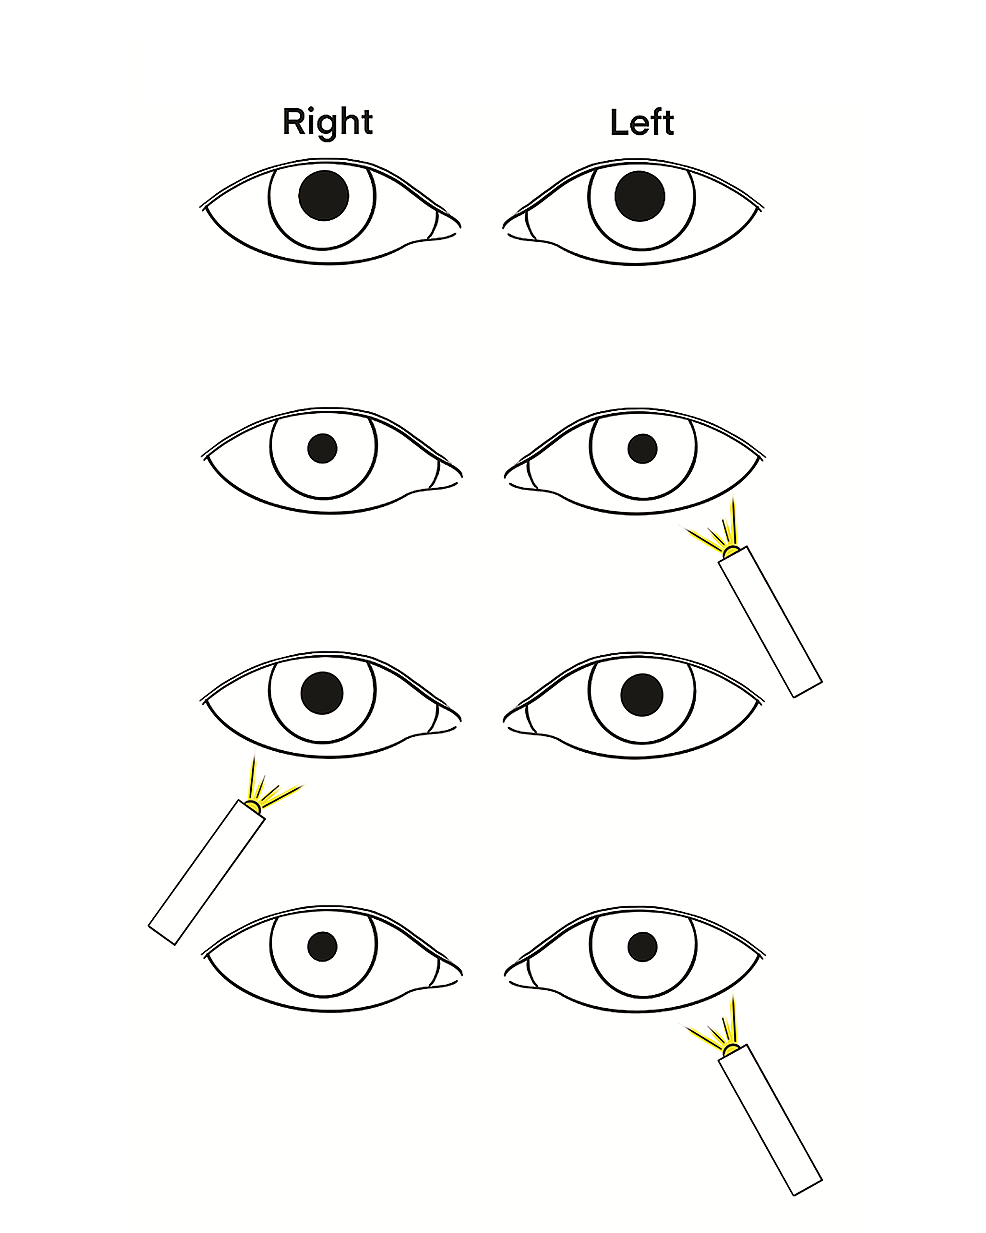 Detection-of-an-afferent-pupillary-defect-in-the-right-eye-using-a-swinging-light-test.-